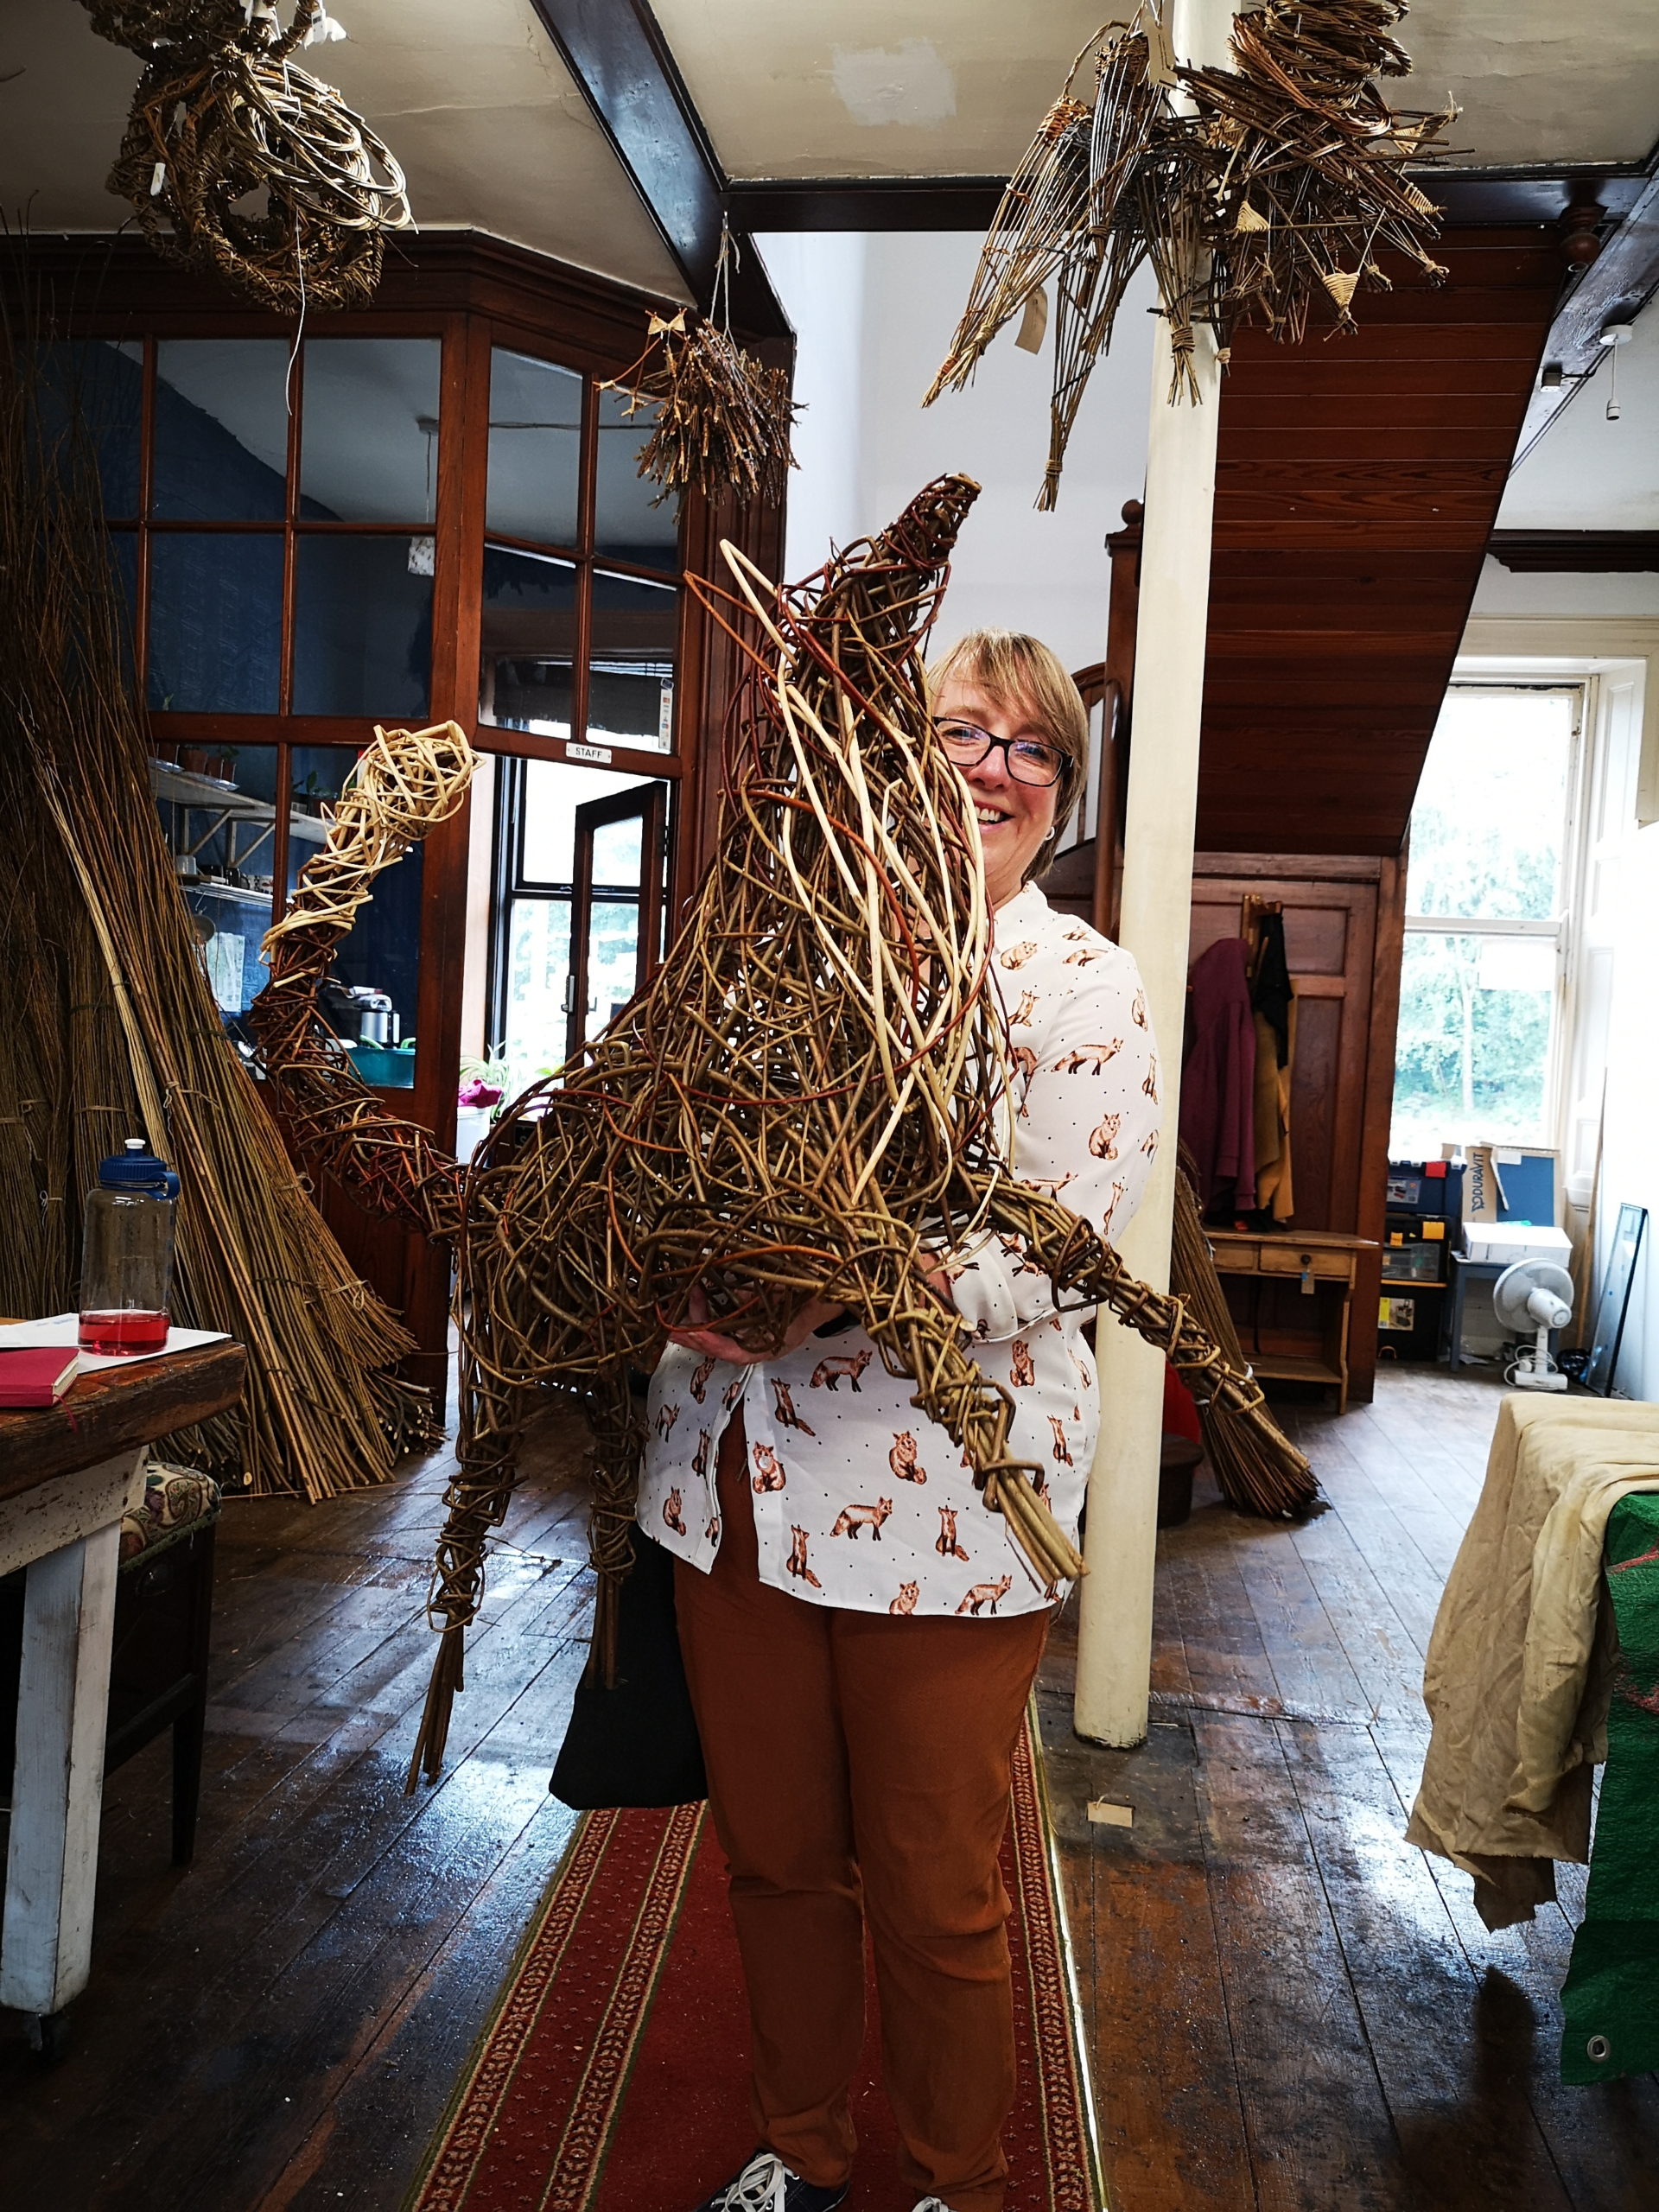 proud student and willow fox creative with nature